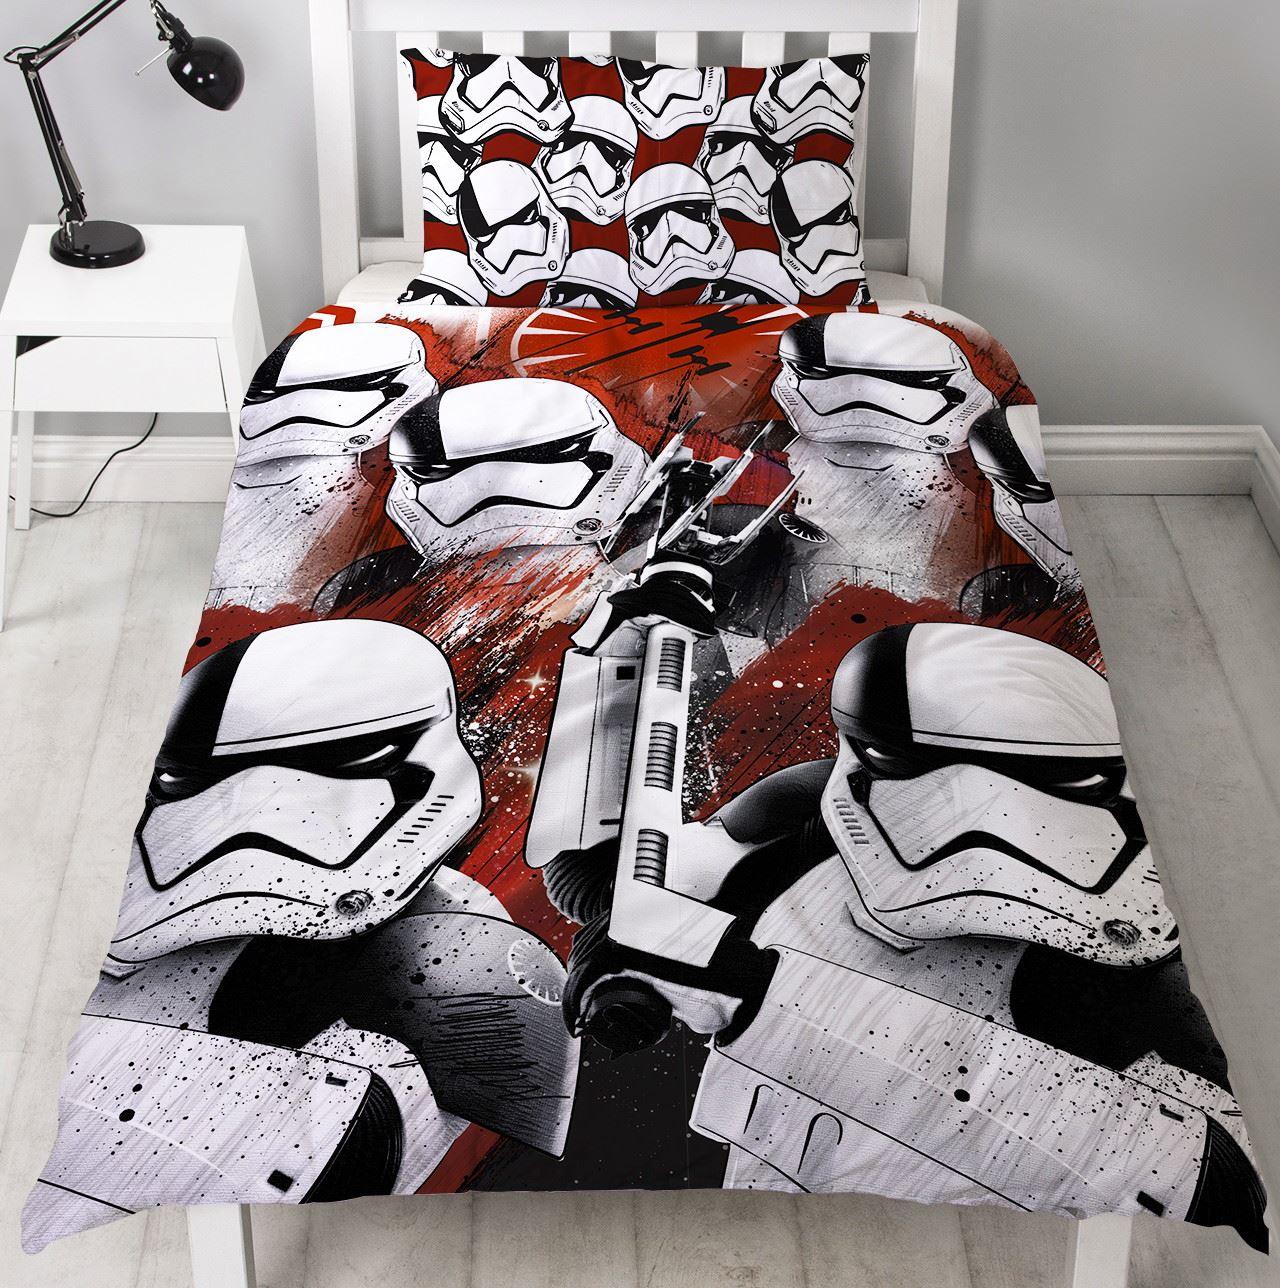 Official-Star-Wars-Licensed-Duvet-Covers-Single-Double-Jedi-Darth-Vader-Lego thumbnail 50